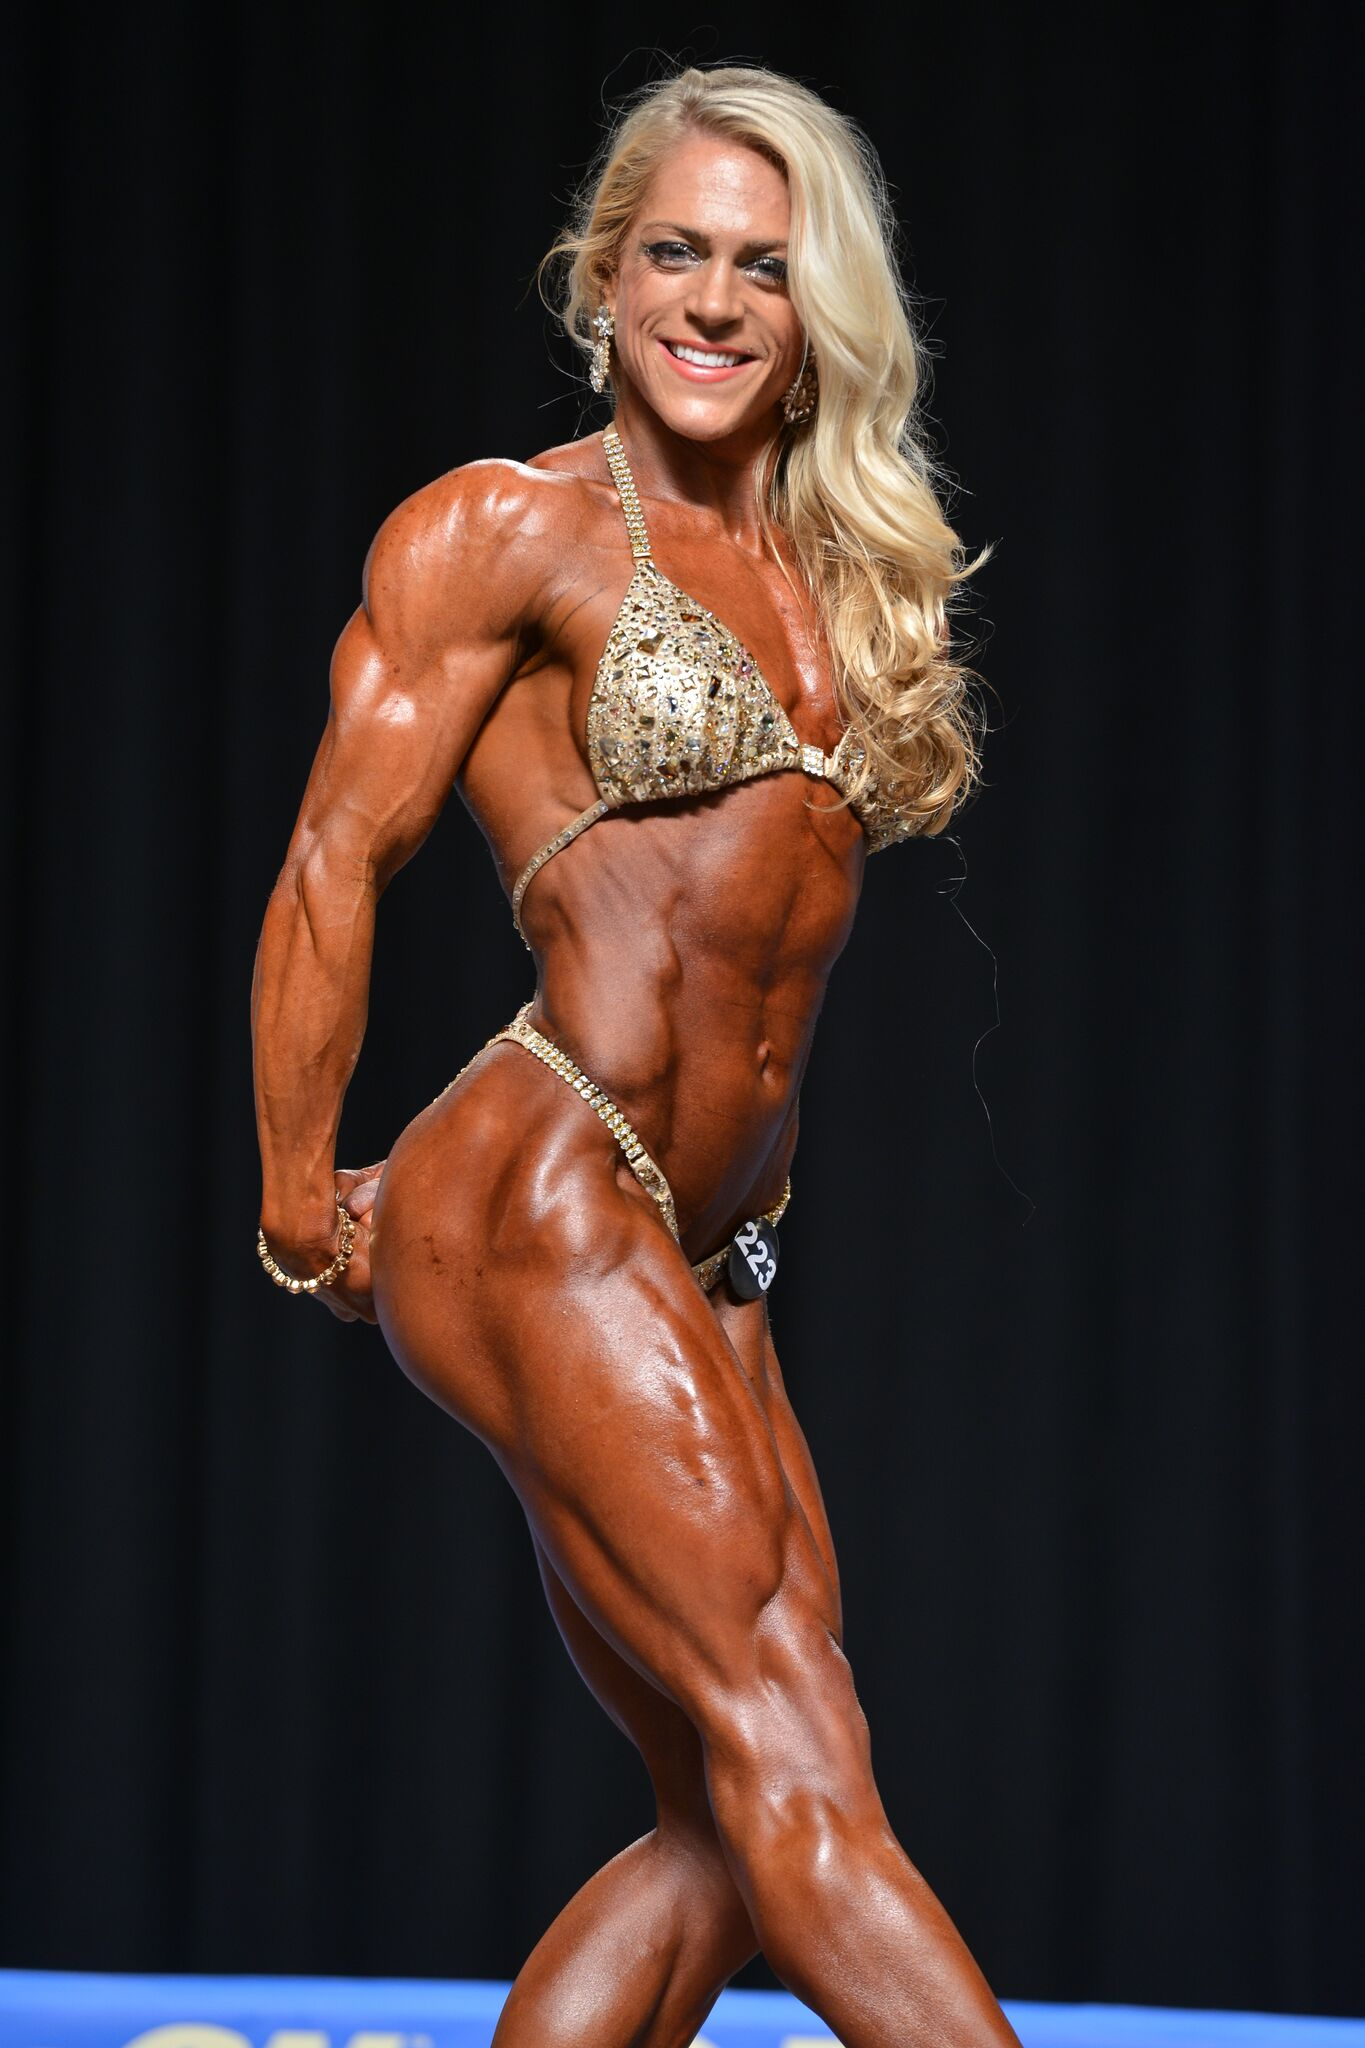 Kat Secor Makes Pro Bodybuilding Debut | Newswire